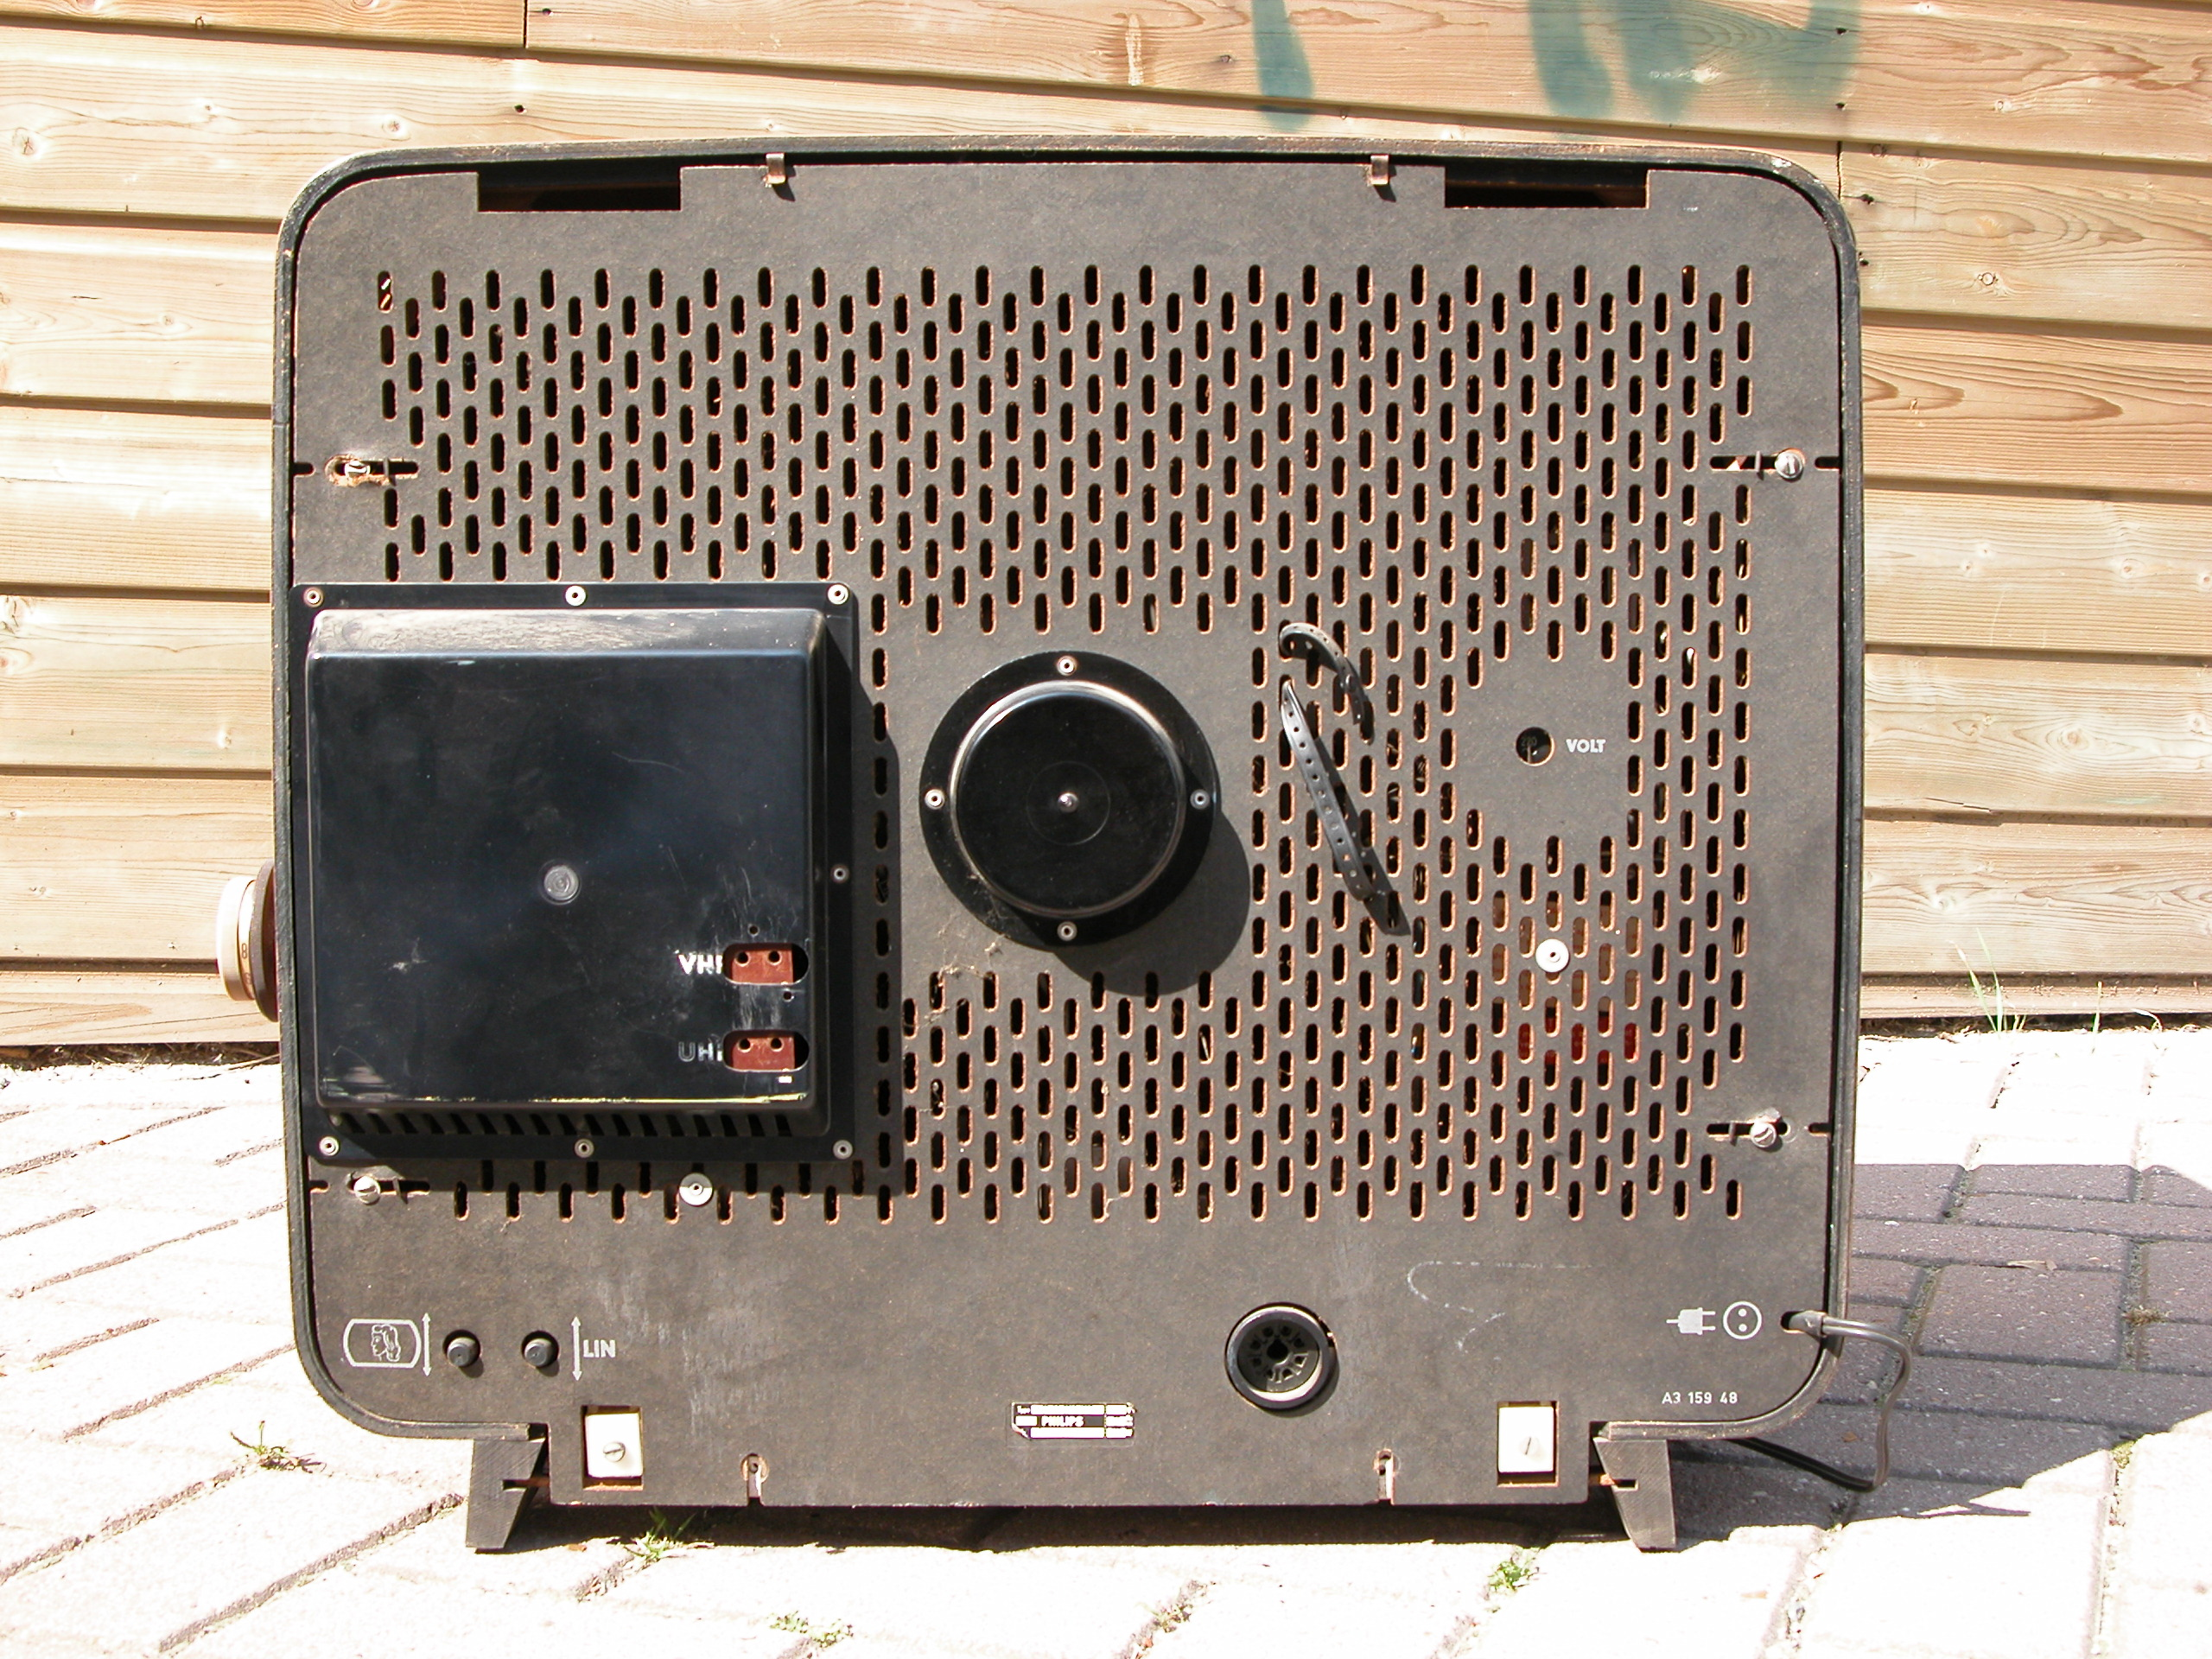 back of a old philips television or radio